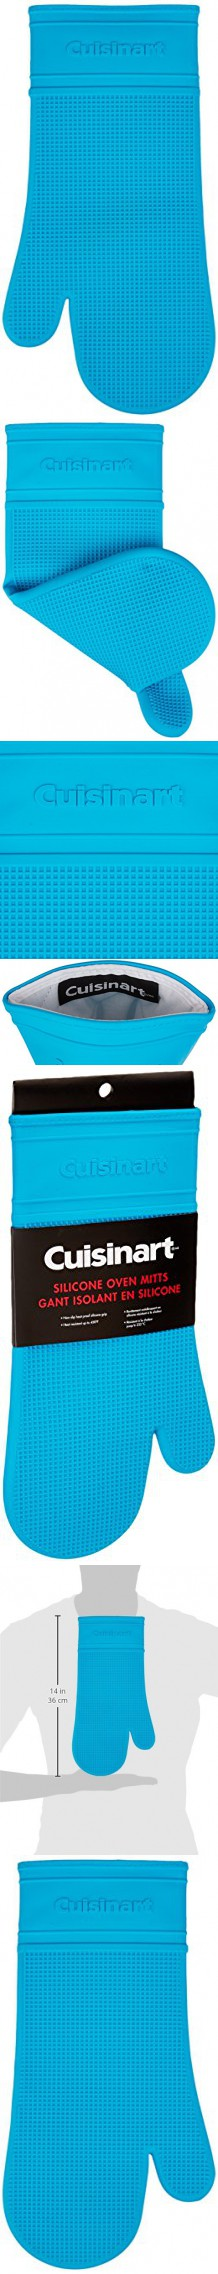 Cuisinart Silicone HeatProof Oven Mitt with Quilted